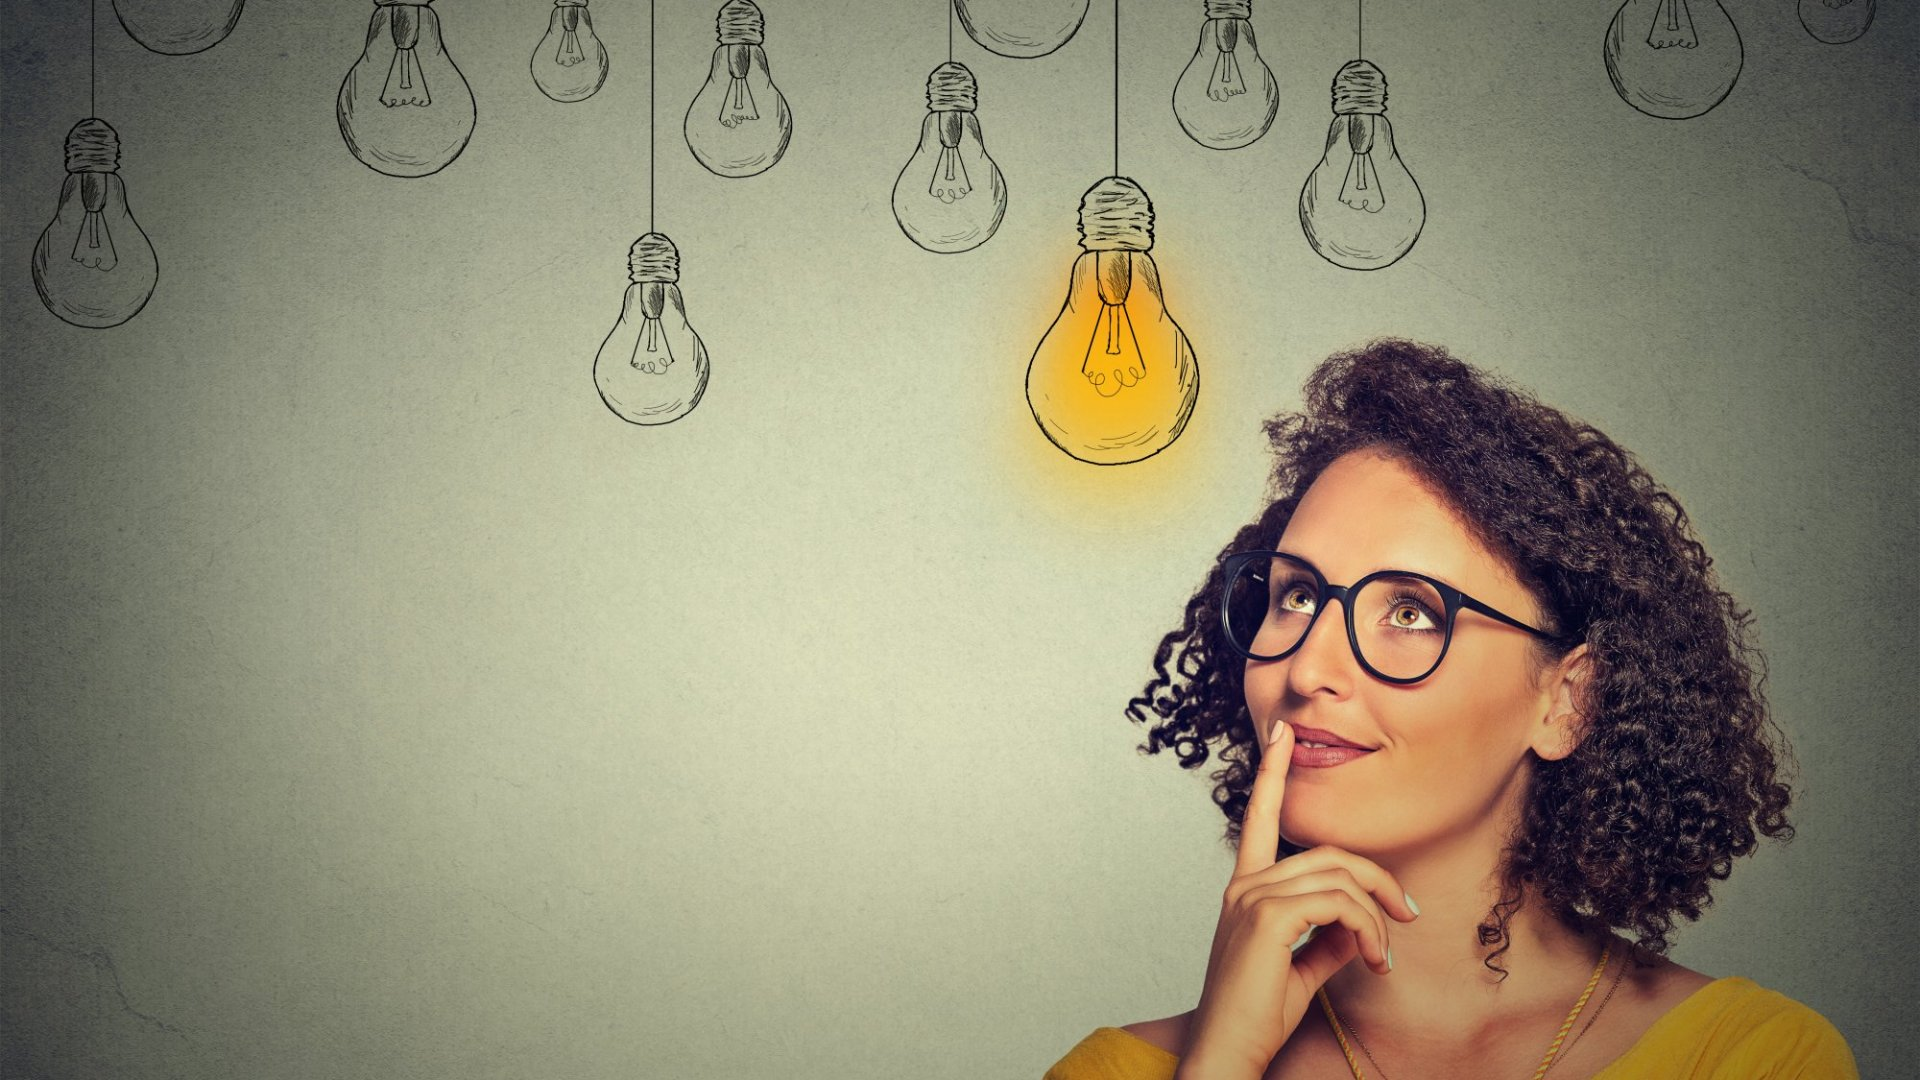 Your Business Isn't 'Smart' If You Don't Do These 3 Things